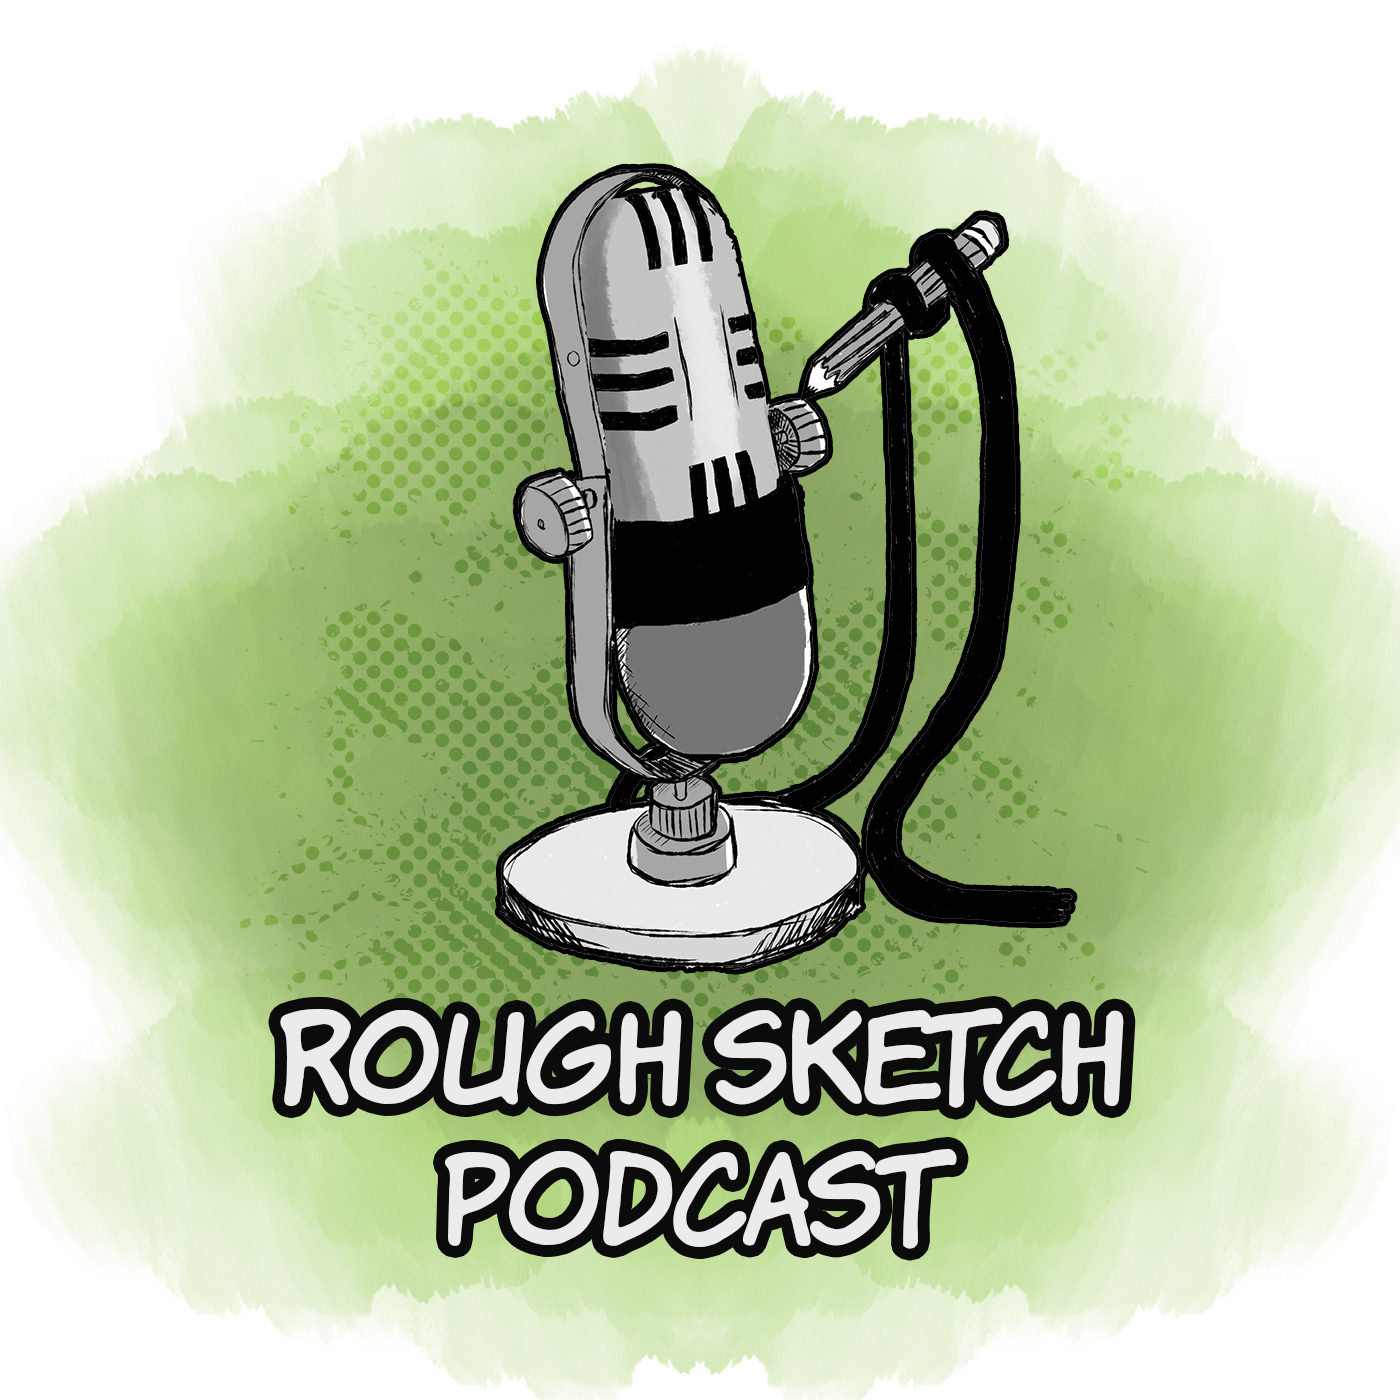 The Rough Sketch Podcast